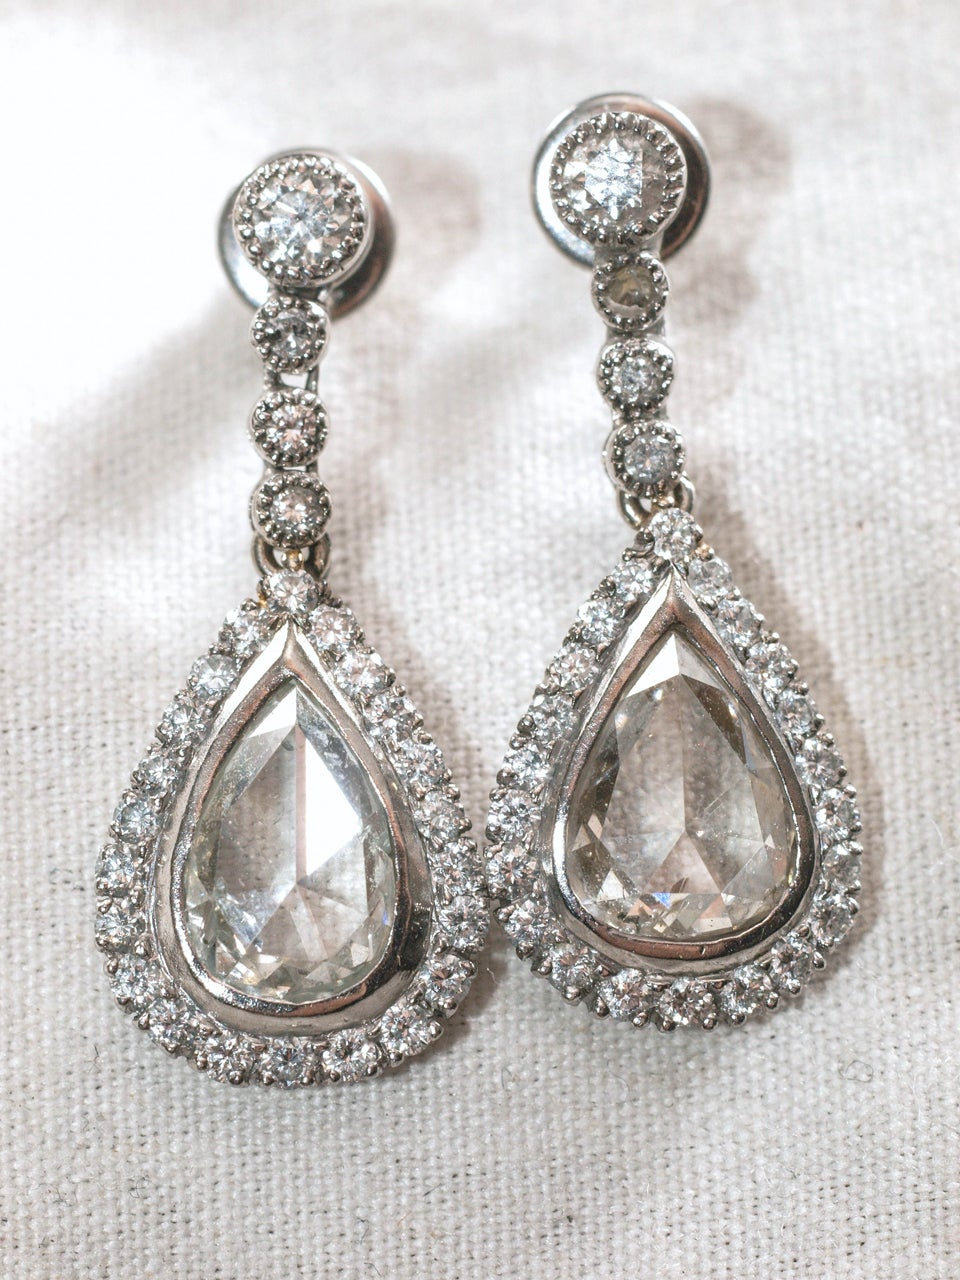 Beautiful Pair of 2.5 carat Rose Cut Diamond Earrings each surrounded by single row of 20 Mine Cut Diamonds and .30 diamond posts TCW-3.5